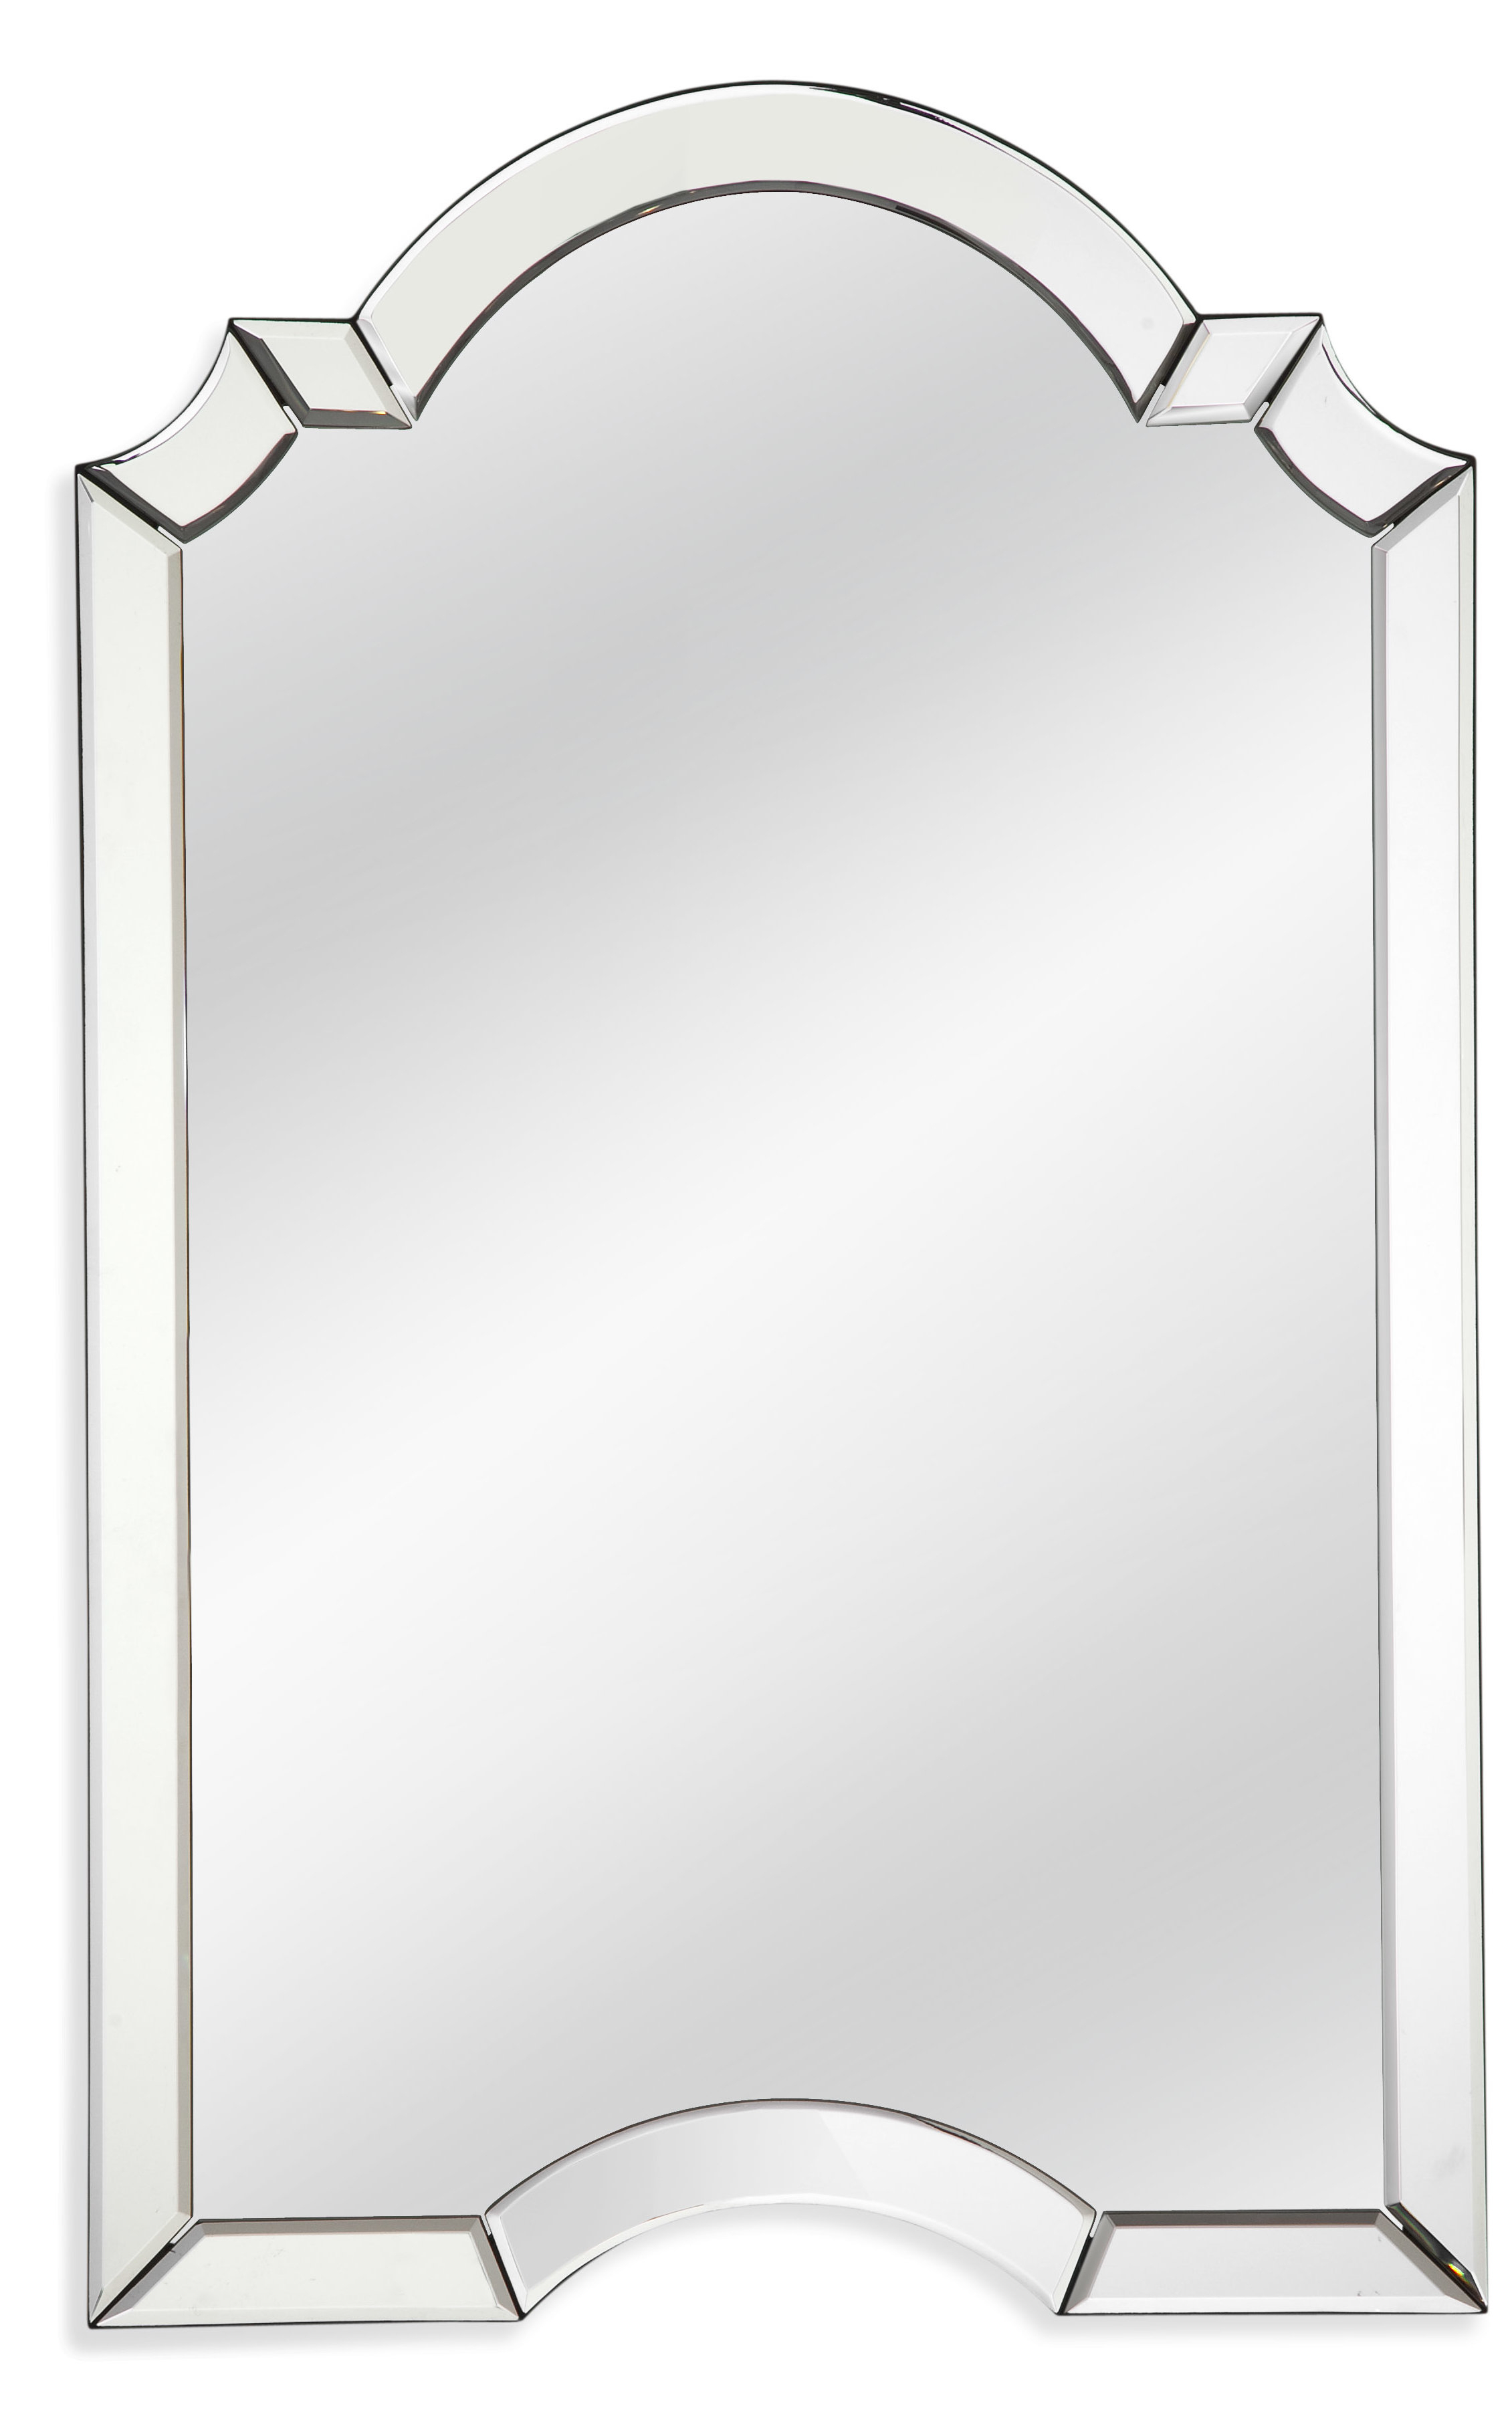 Modern Arch / Crowned Top Wall Mirrors | Allmodern Pertaining To Fifi Contemporary Arch Wall Mirrors (View 10 of 20)